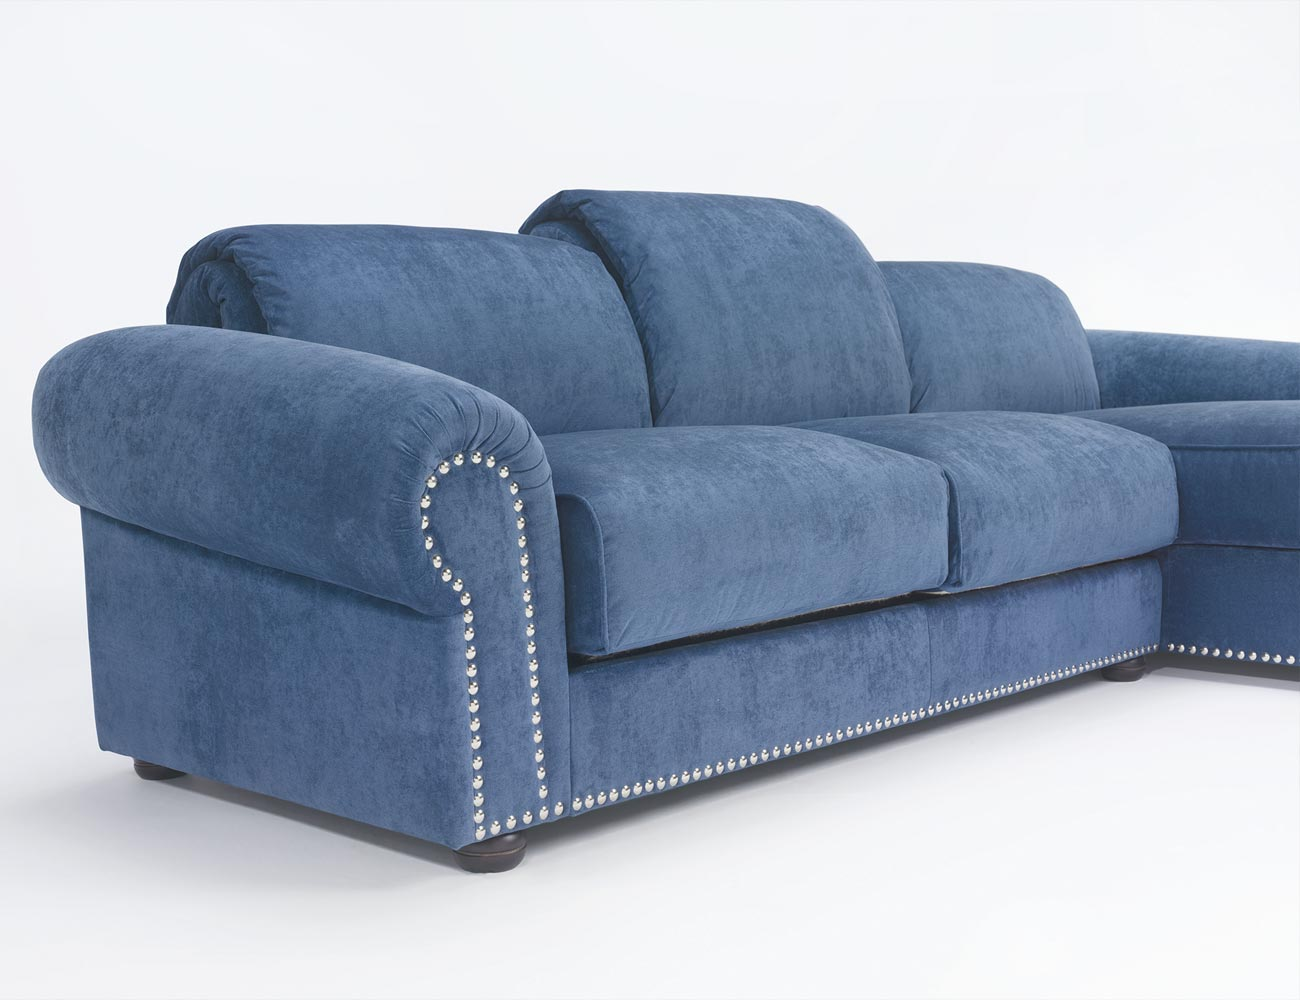 Sofa chaiselongue gran lujo decorativo azul 126